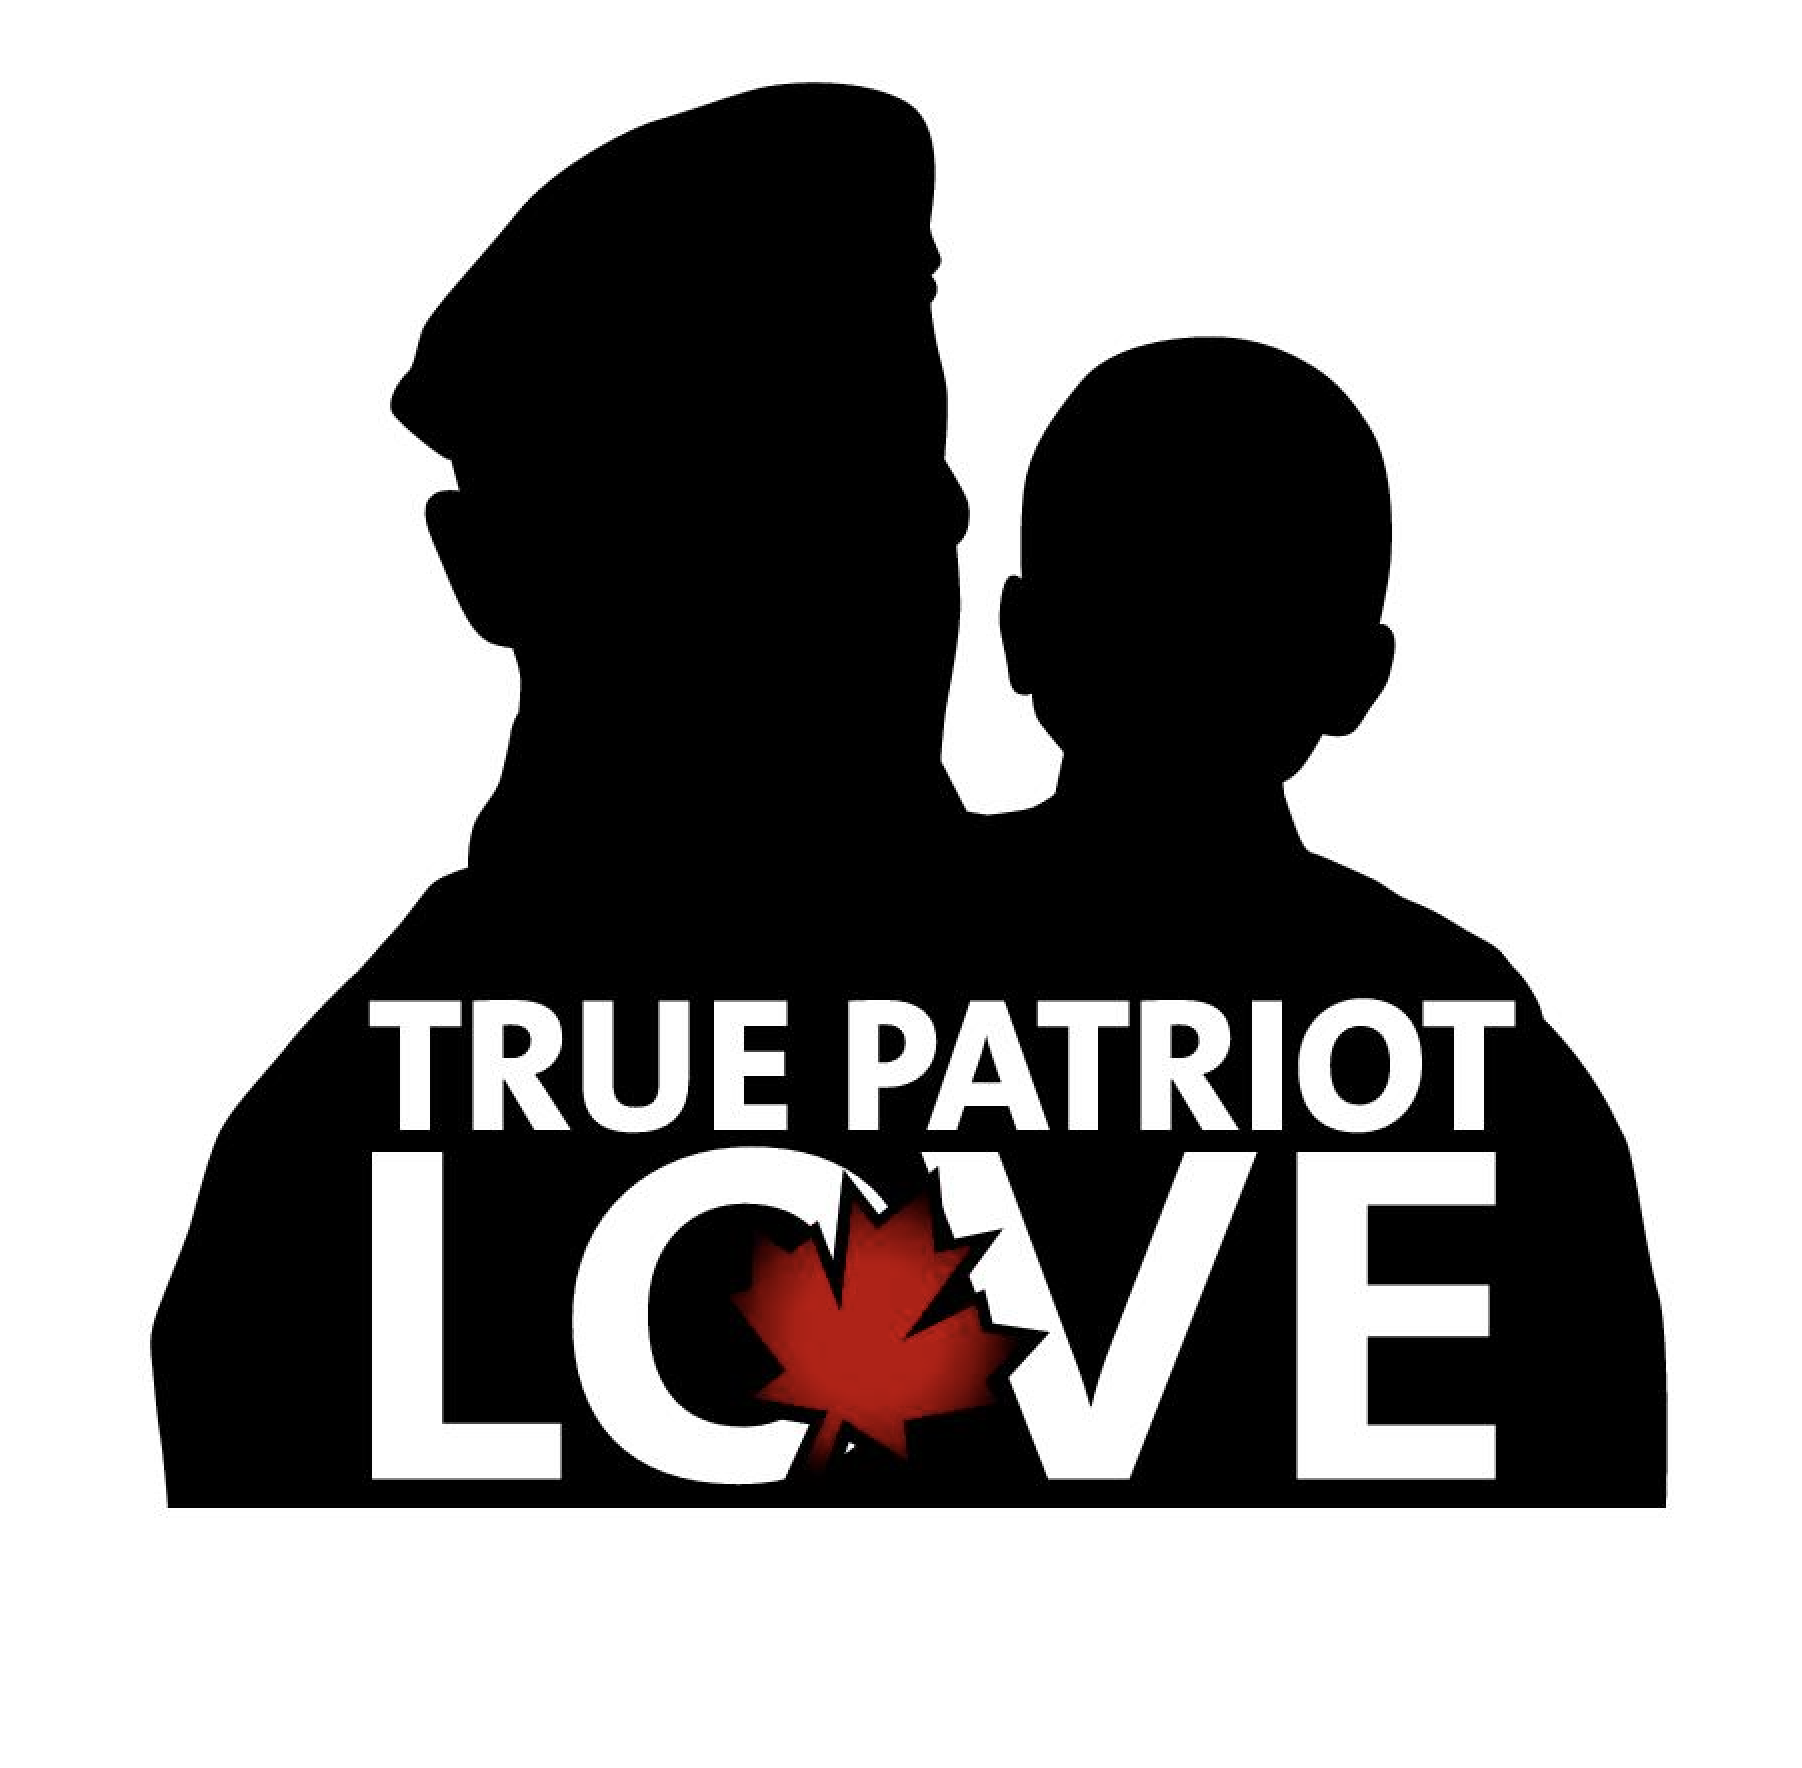 True-Patriot-Love